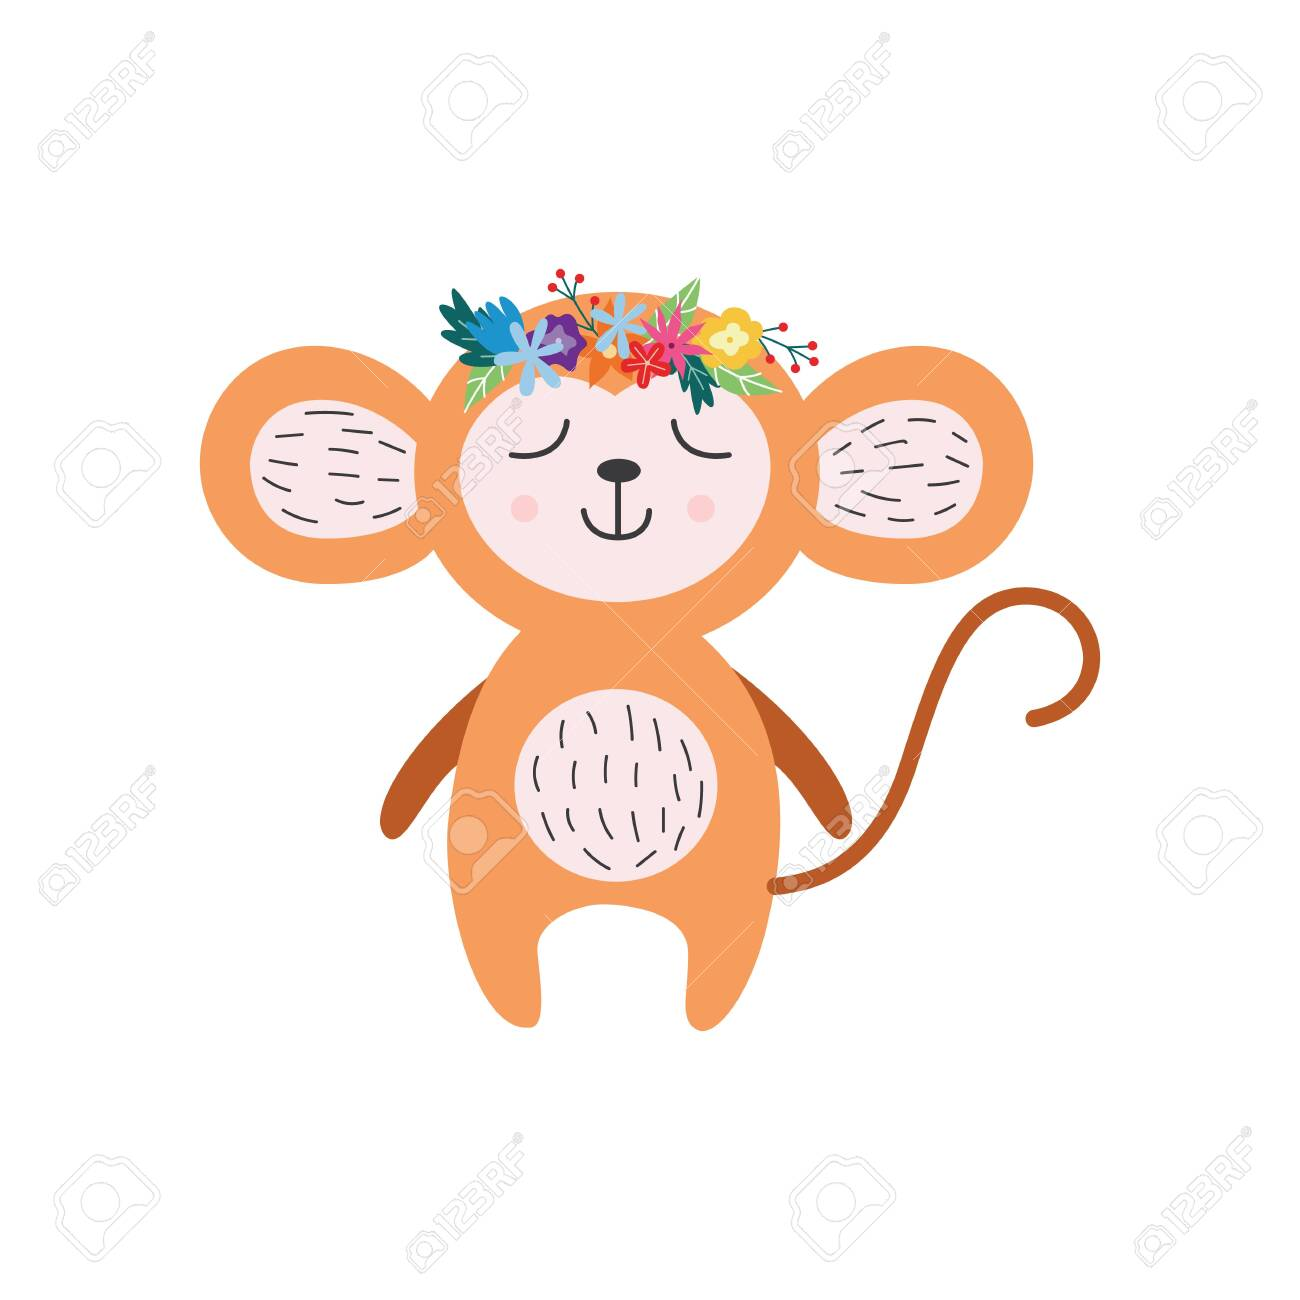 Cartoon Baby Monkey With Flower Crown And Closed Eyes Isolated Royalty Free Cliparts Vectors And Stock Illustration Image 145345022 Vector graphics install any size without loss of quality. 123rf com